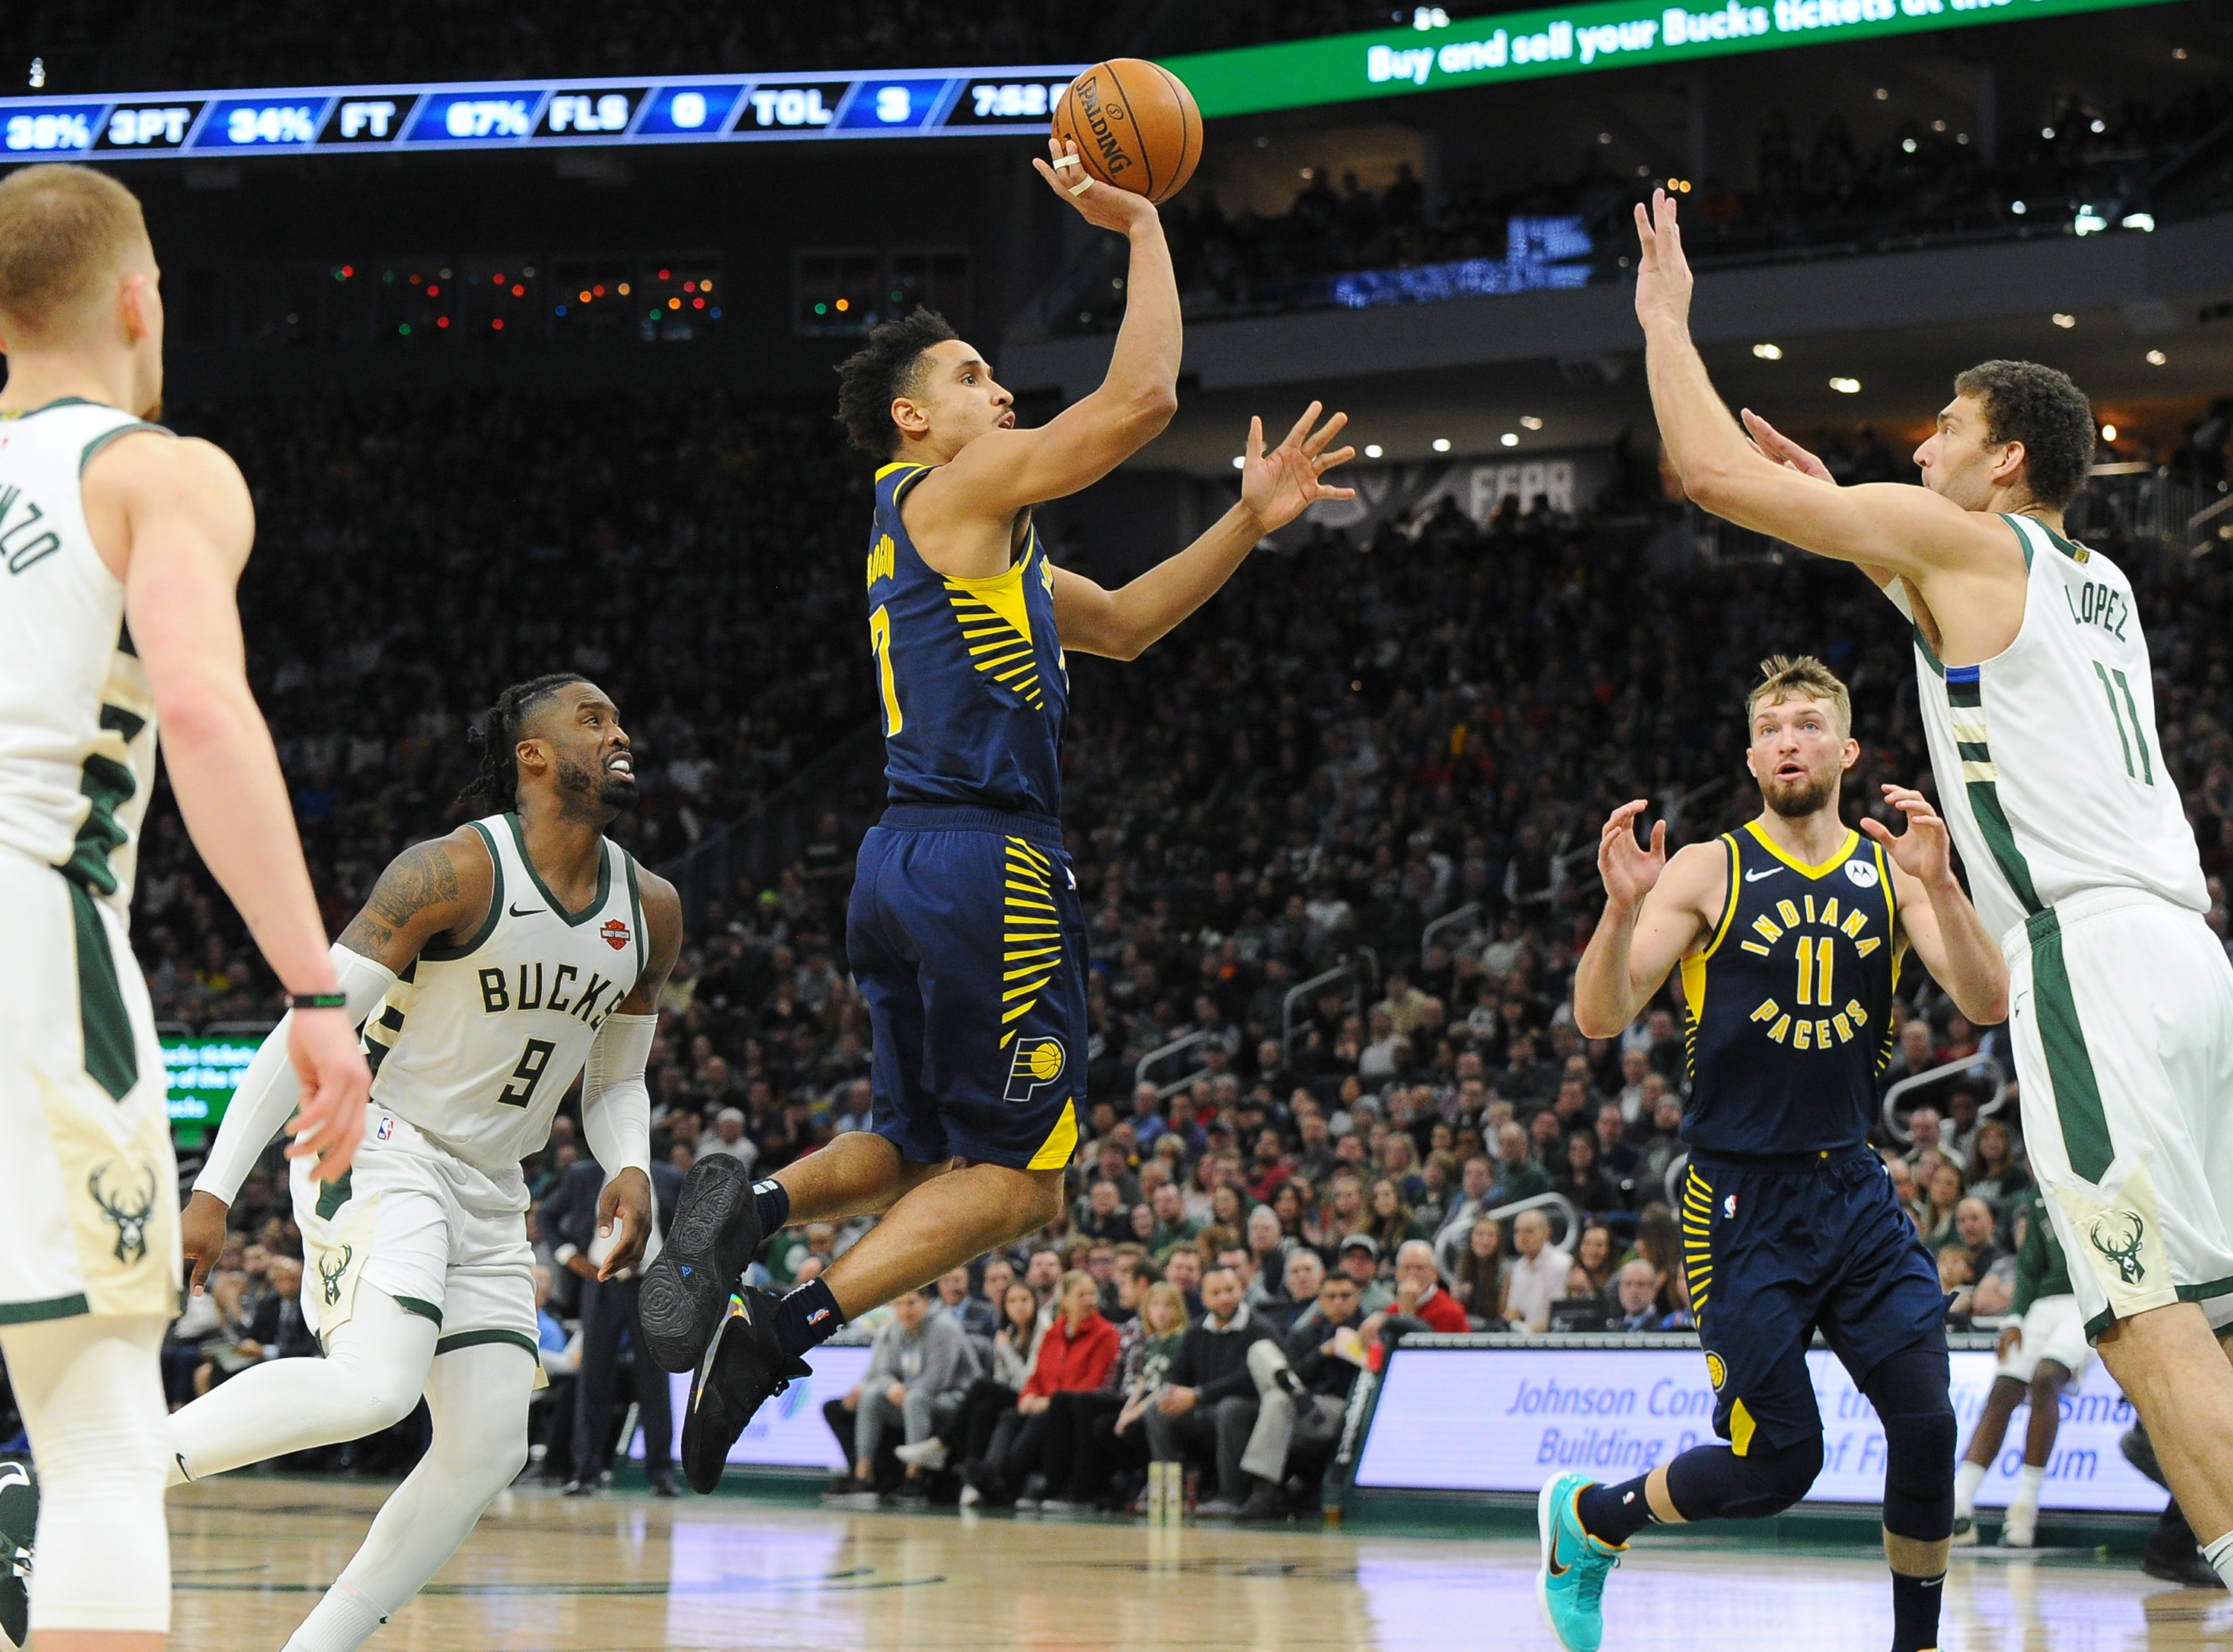 Malcolm Brogdon takes shot at Bucks for undervaluing him